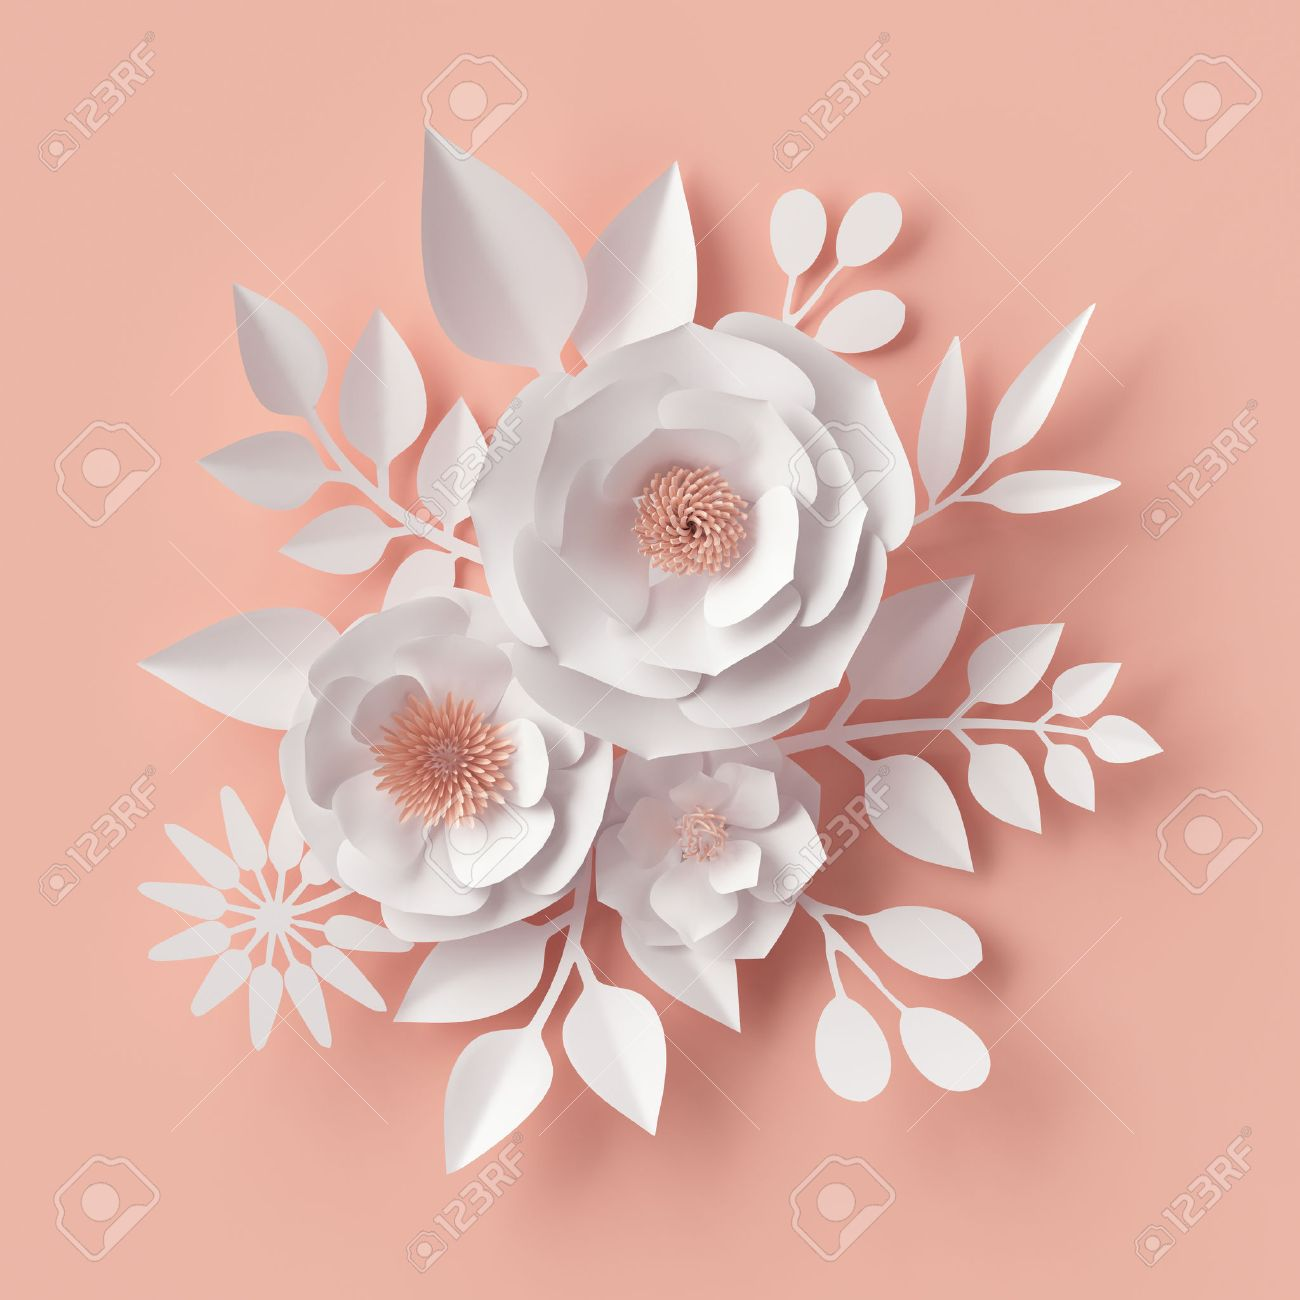 3d Render Digital Illustration White Paper Flowers Blush Pink